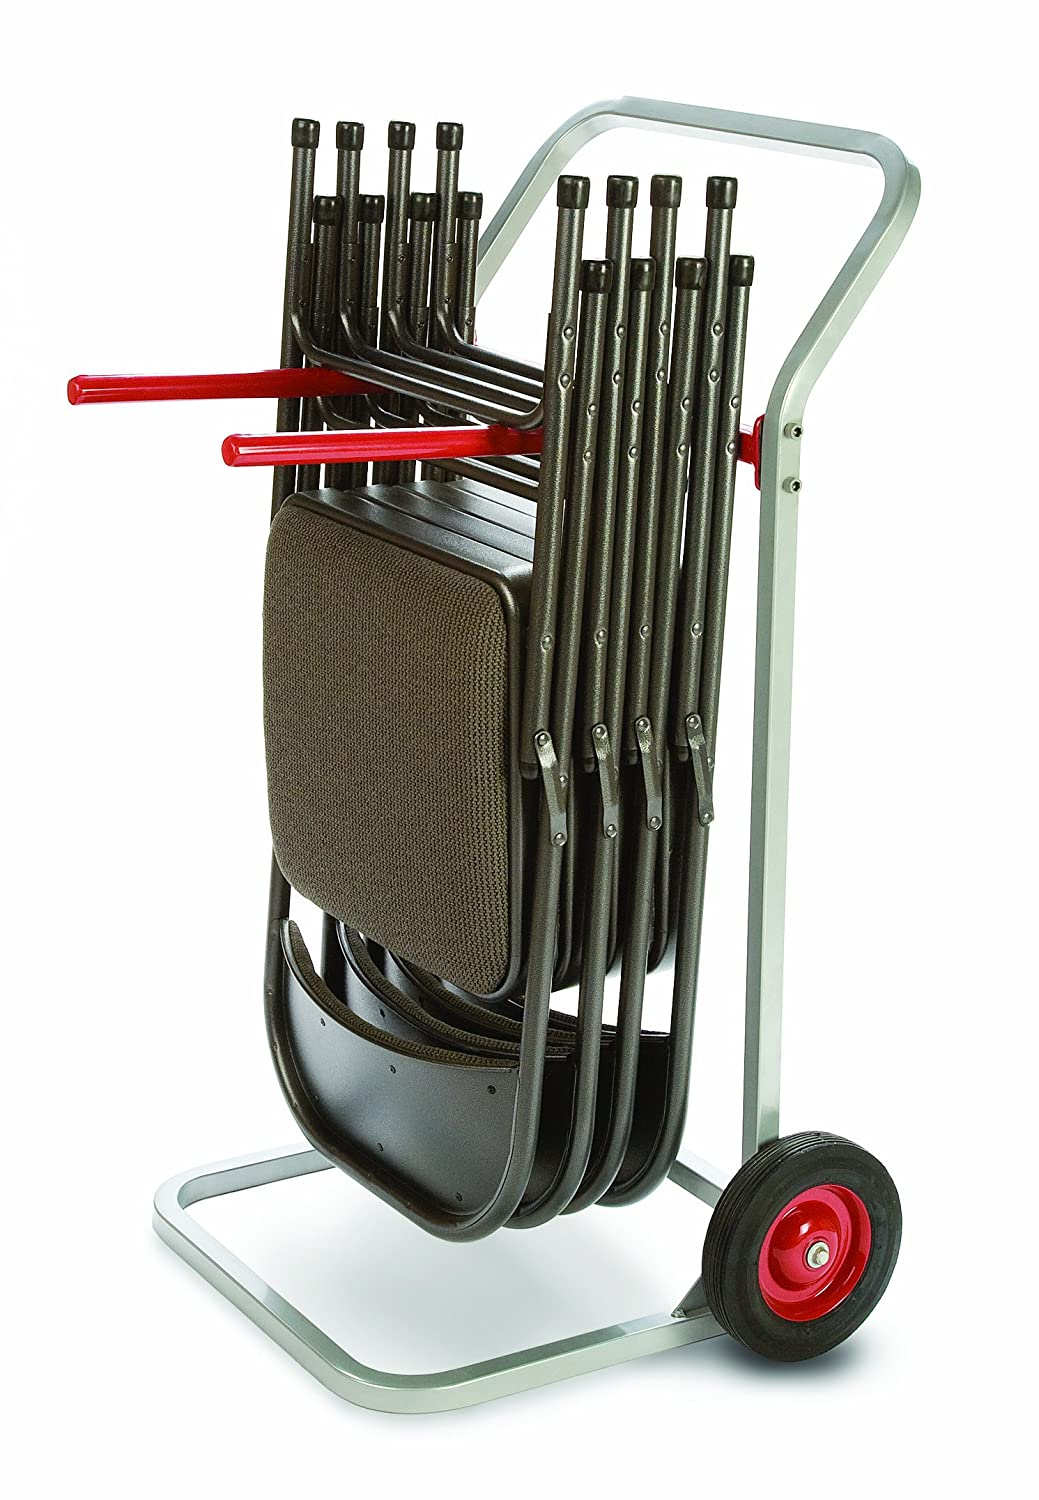 27-3//4 Width x 43 Height x 22-1//2 Depth Raymond 750 Folding Chair Dolly with 8 x 1-3//4 Skid-Resistant Rubber Wheels 180 lbs Capacity